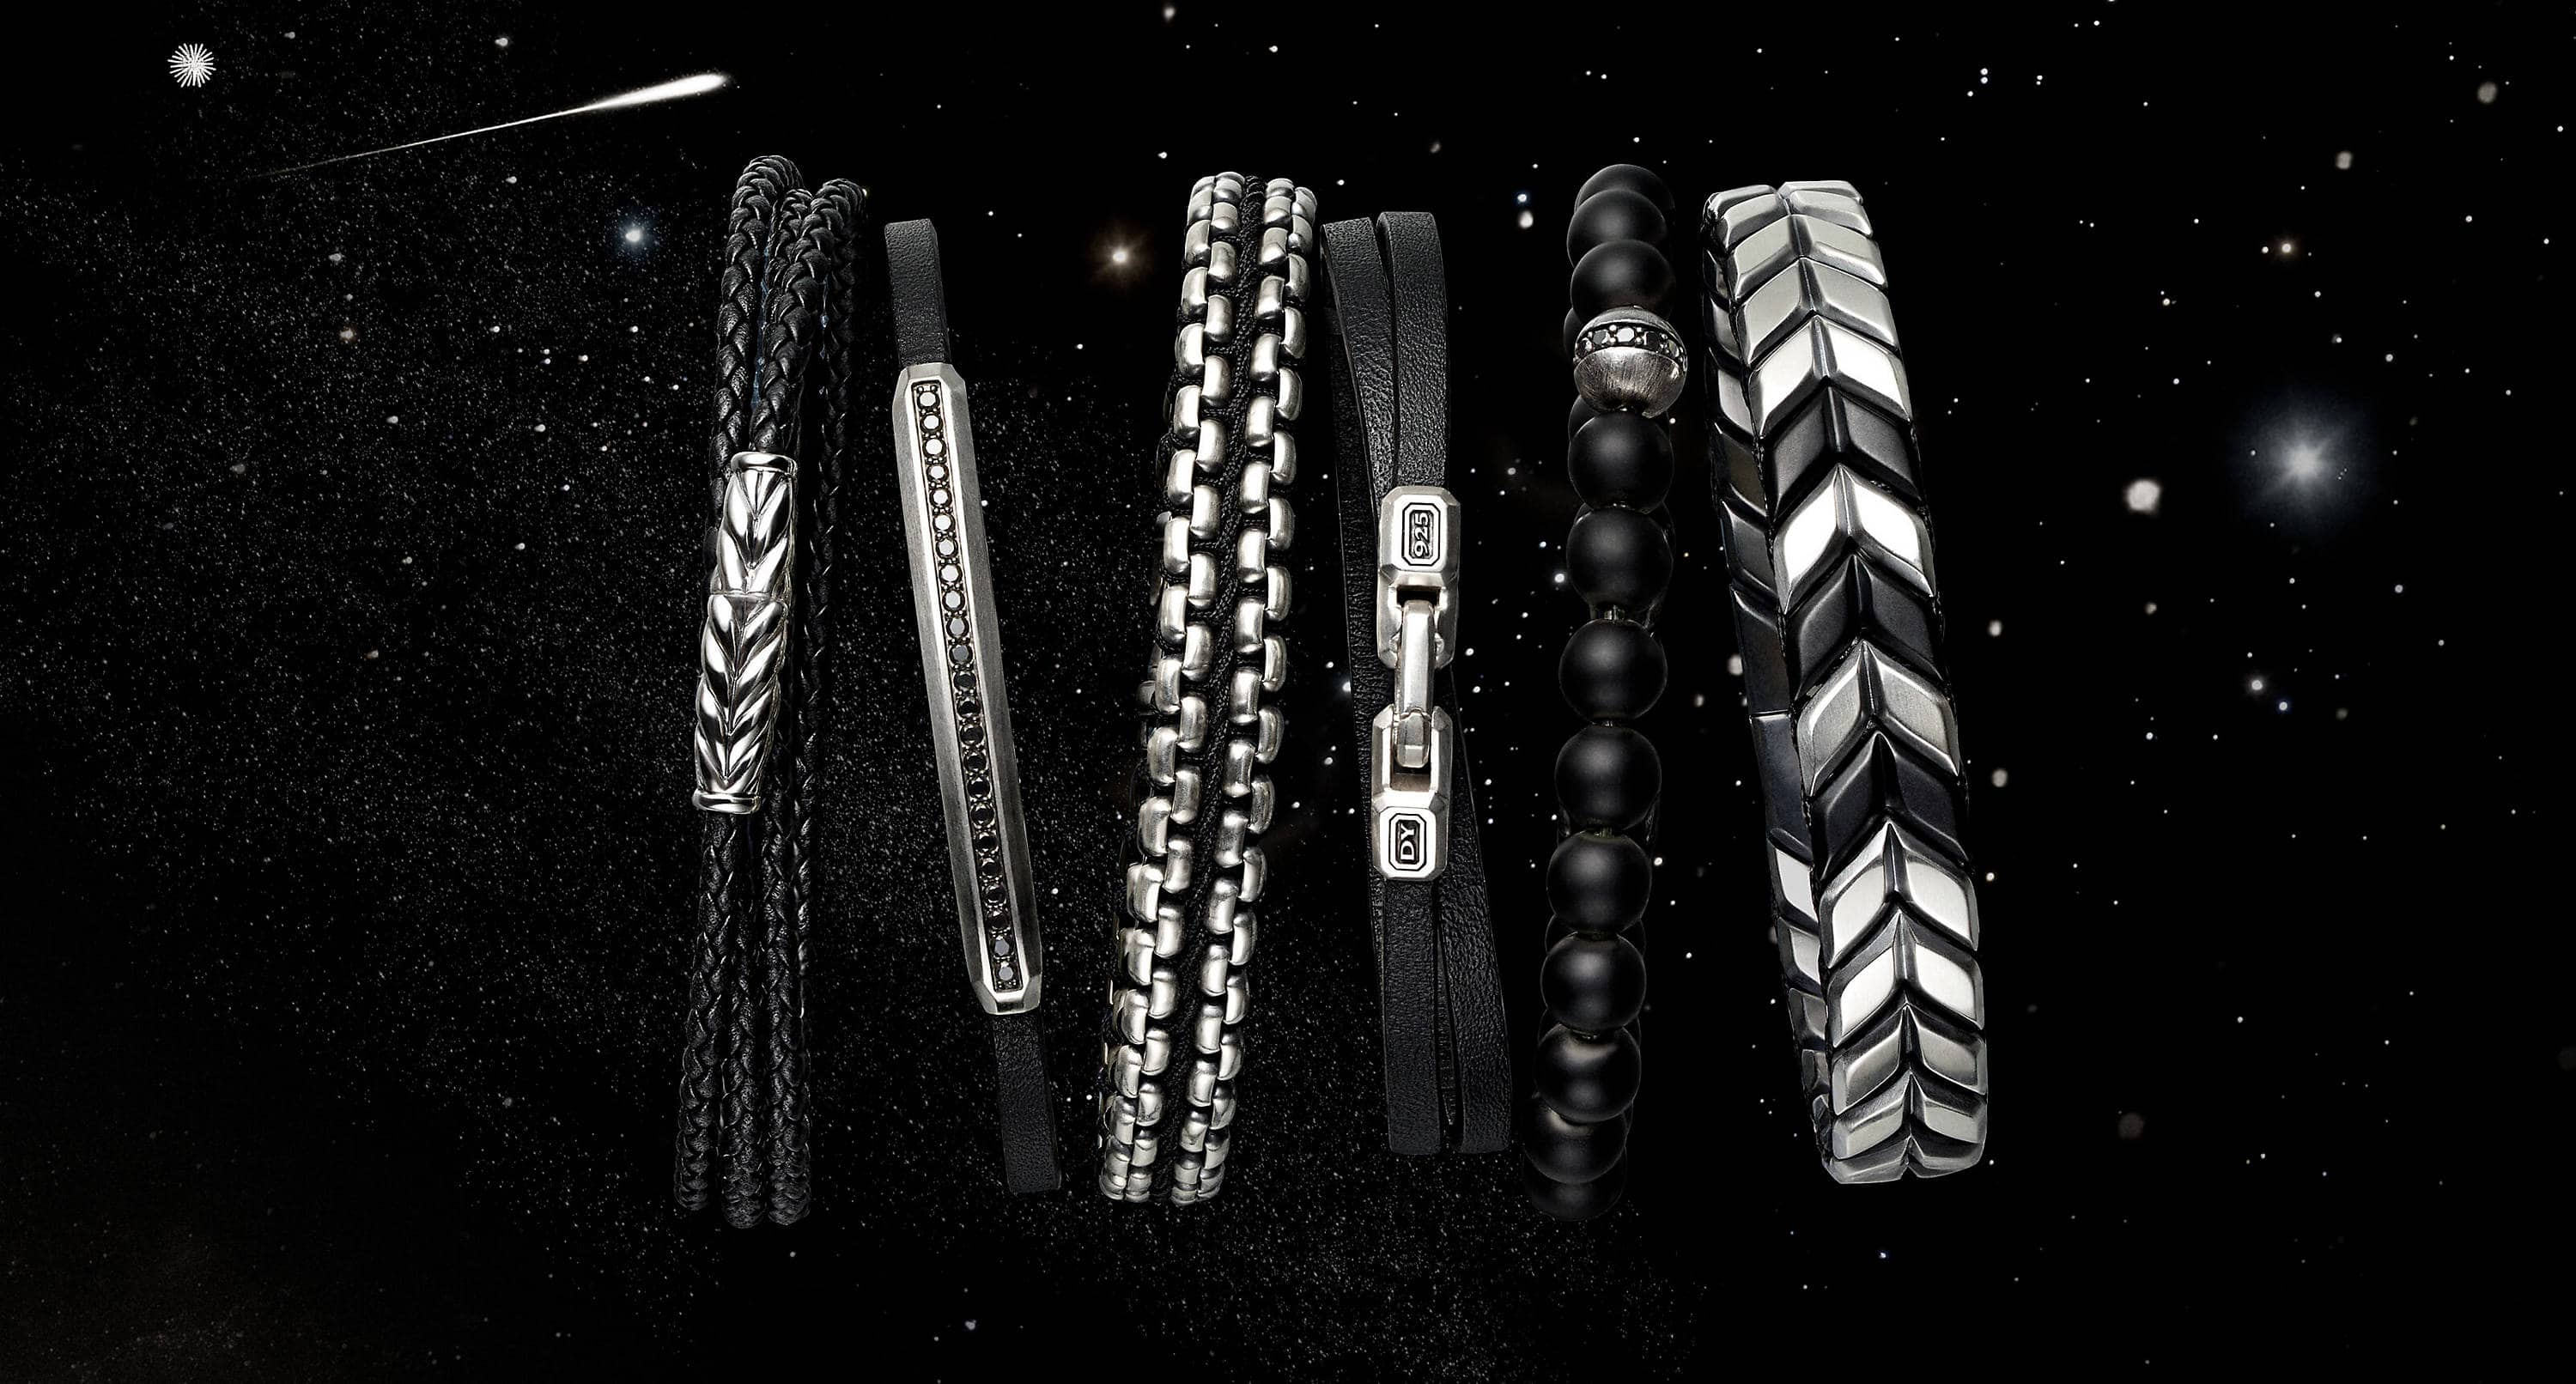 A color photo shows a horizontal stack of six David Yurman men's bracelets from the Streamline, Chain and Chevron collections floating in front of a starry night sky. The jewelry is crafted from sterling silver with or without black leather, diamonds, woven nylon, onyx or titanium.